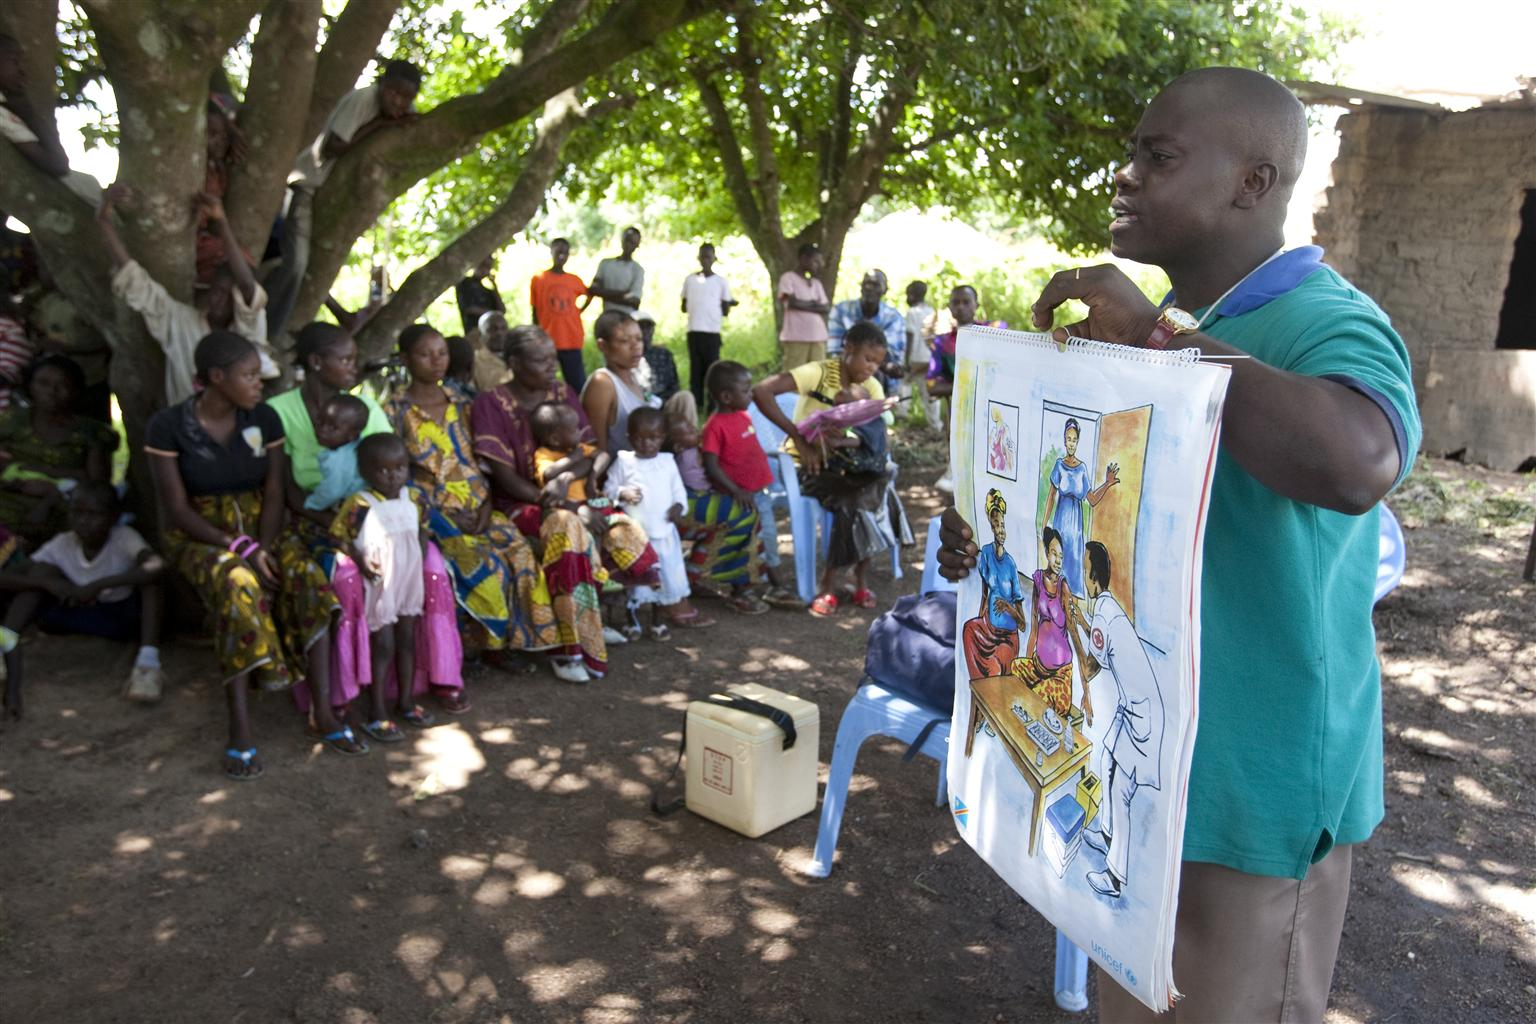 A nurse  delivers a presentation about the importance of tetanus vaccination, before the start of an immunization session in Mukanga-Moke Village, Katanga Province, Democratic Republic of Congo.